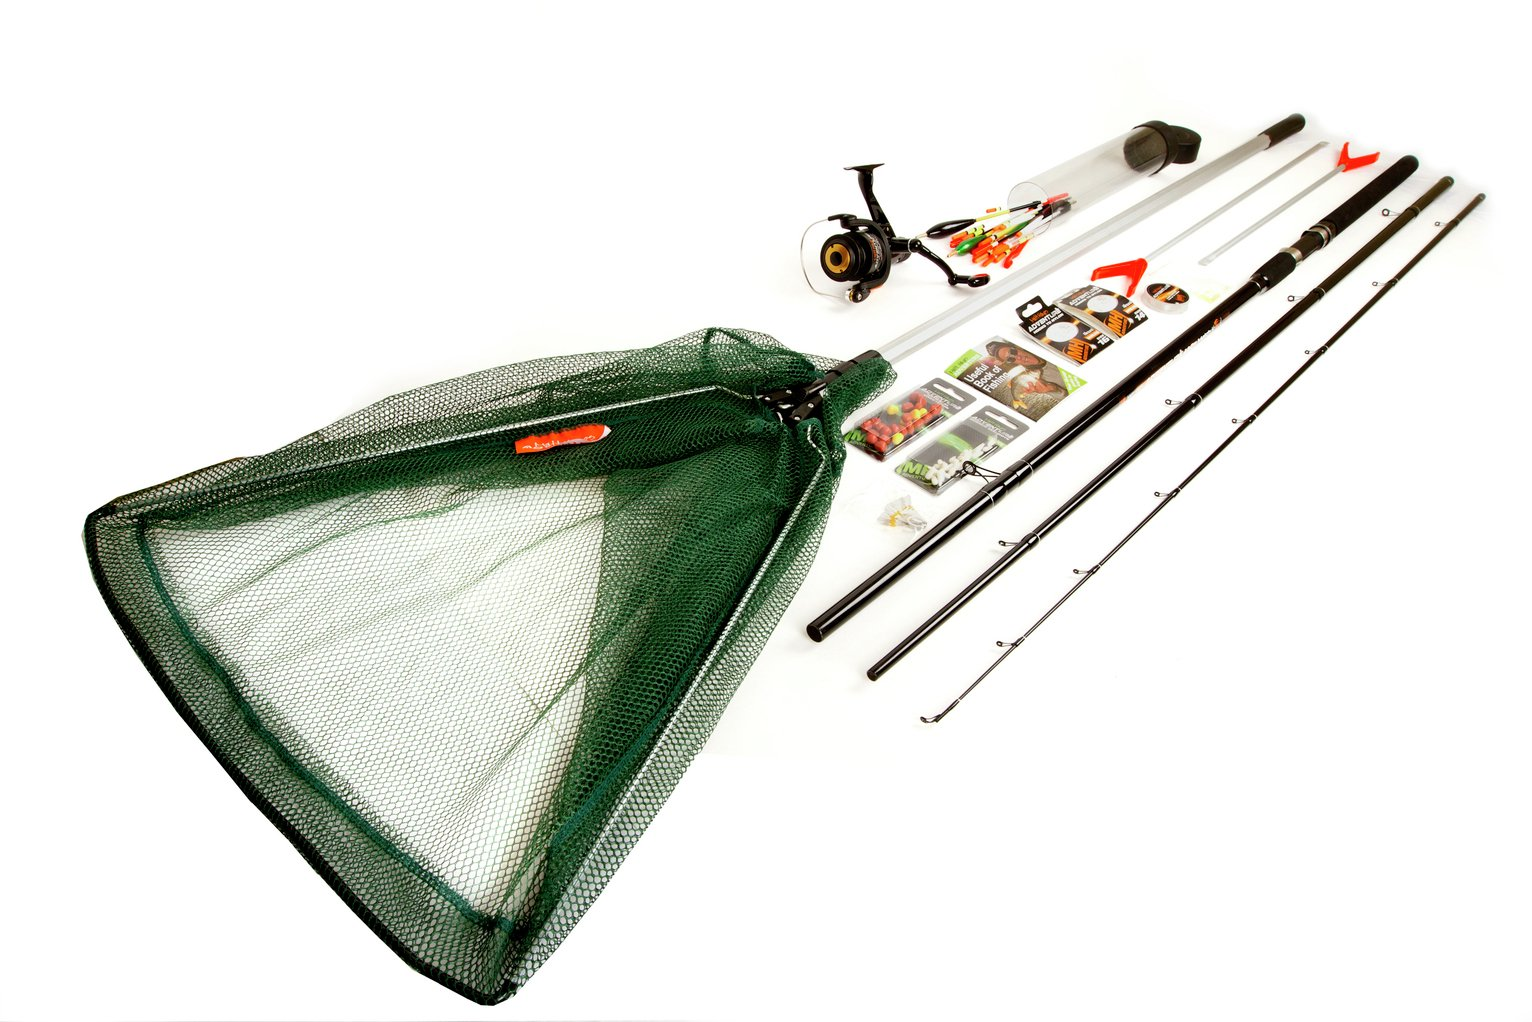 Image of Matt Hayes Coarse Fishing Kit with Net, Rods & Accessories.